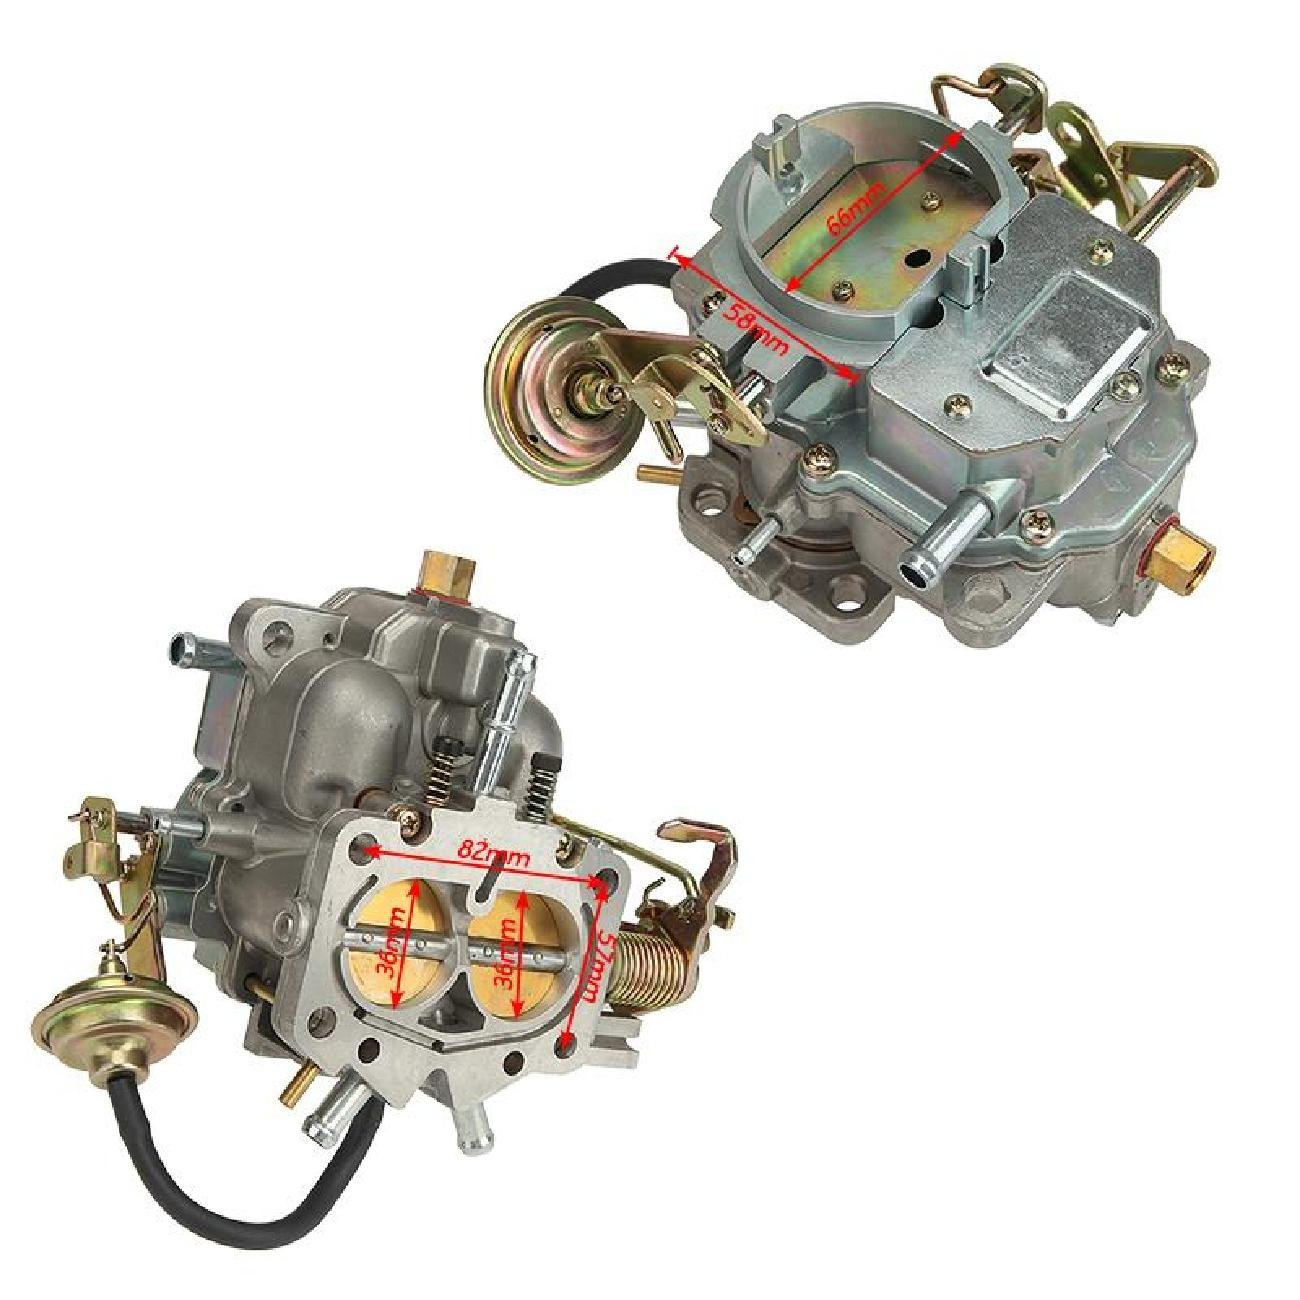 Partol Carburetor Carb for 1966-1973 Dodge Plymouth/Dodge Truck with  273-318 Engine - Manual Choke